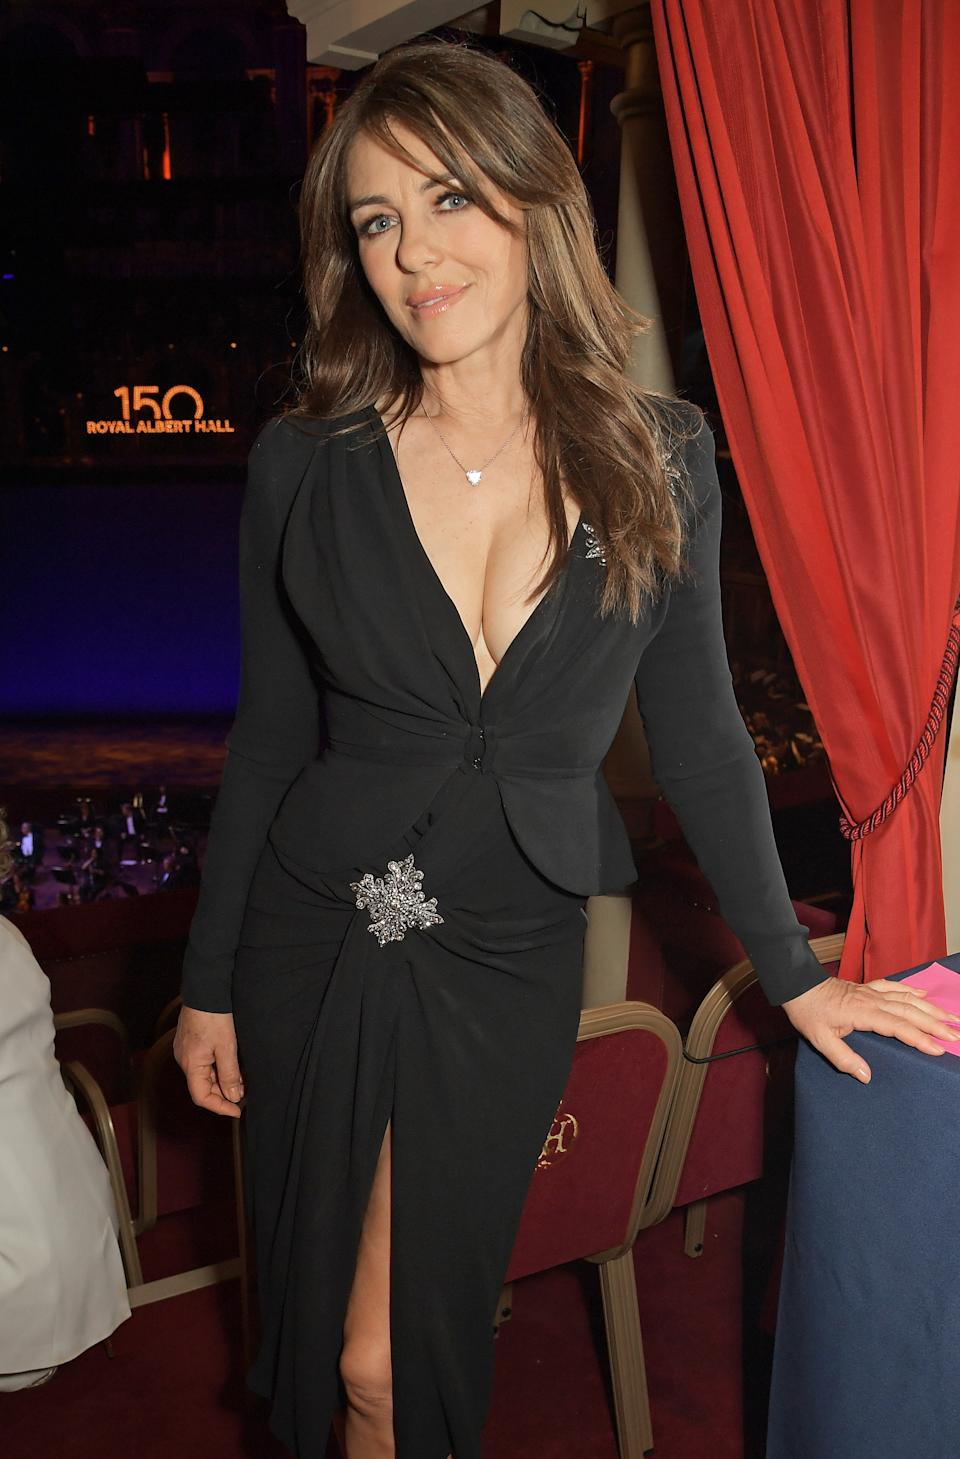 Elizabeth Hurley wears a plunging black dress at the inaugural British Ballet Charity Gala presented by Dame Darcey Bussell at The Royal Albert Hall on June 03, 2021 in London, England